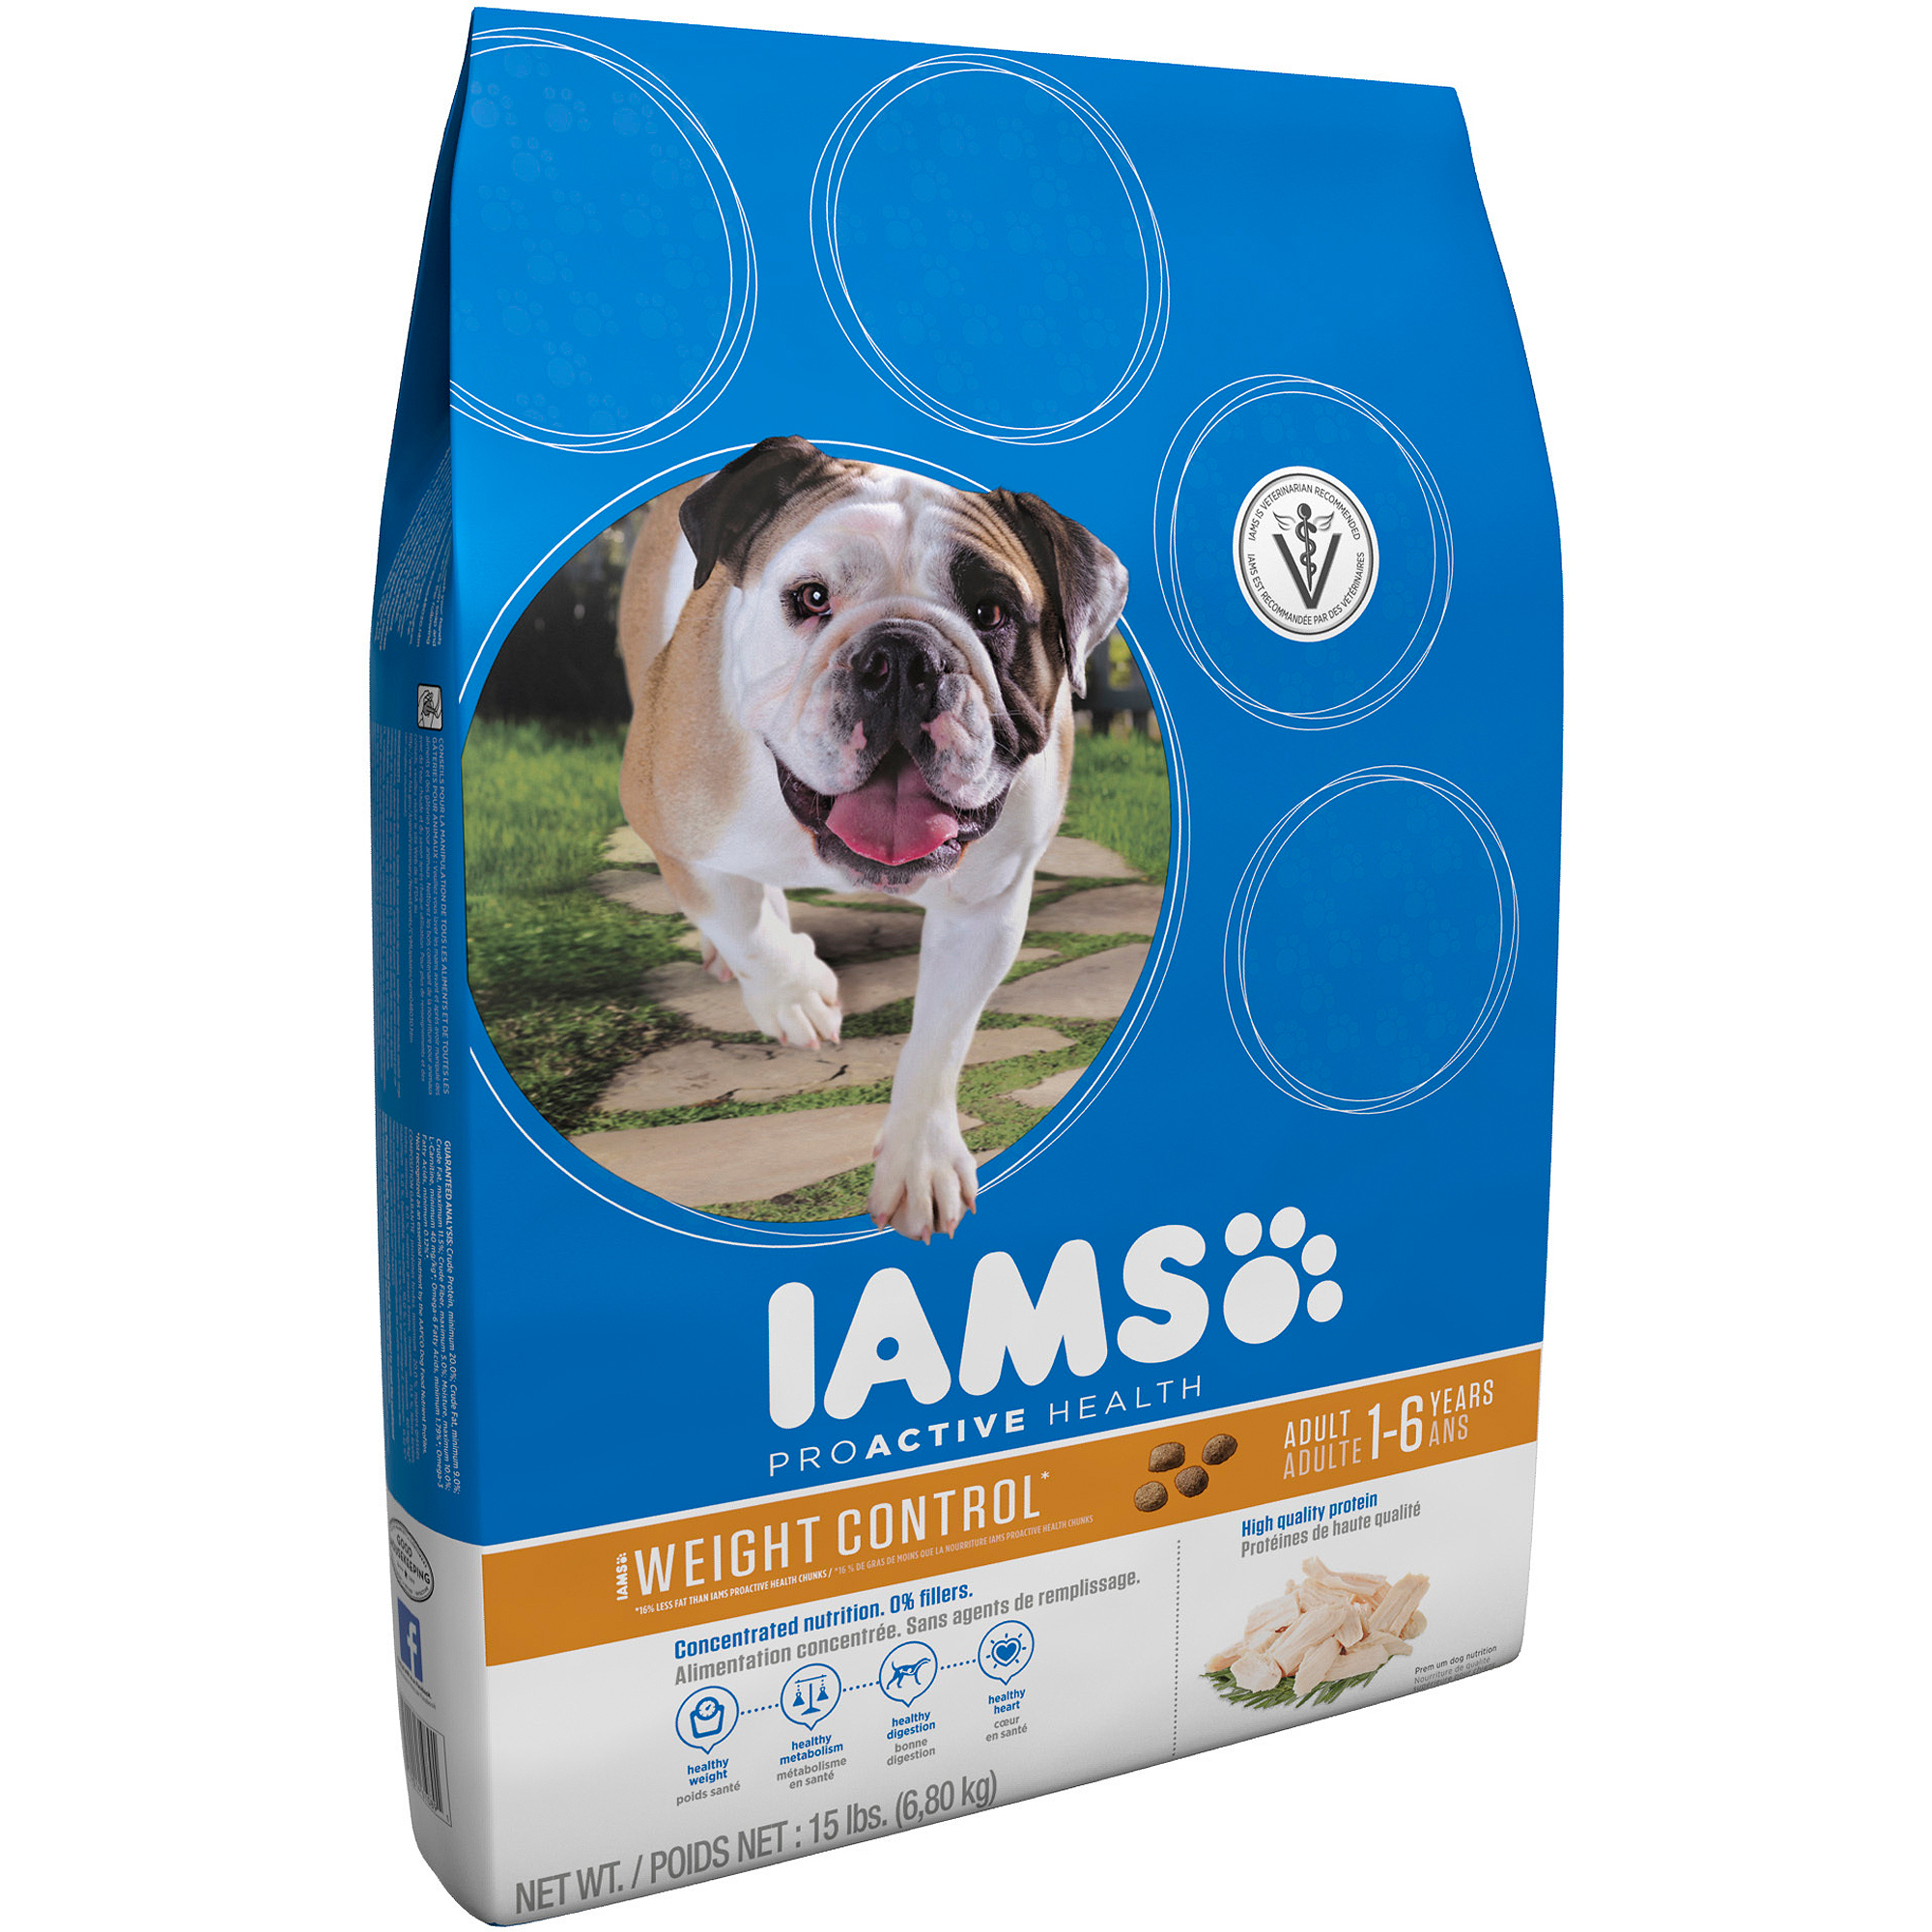 Iams ProActive Health Adult Weight Control Premium Dog Food 15 lbs